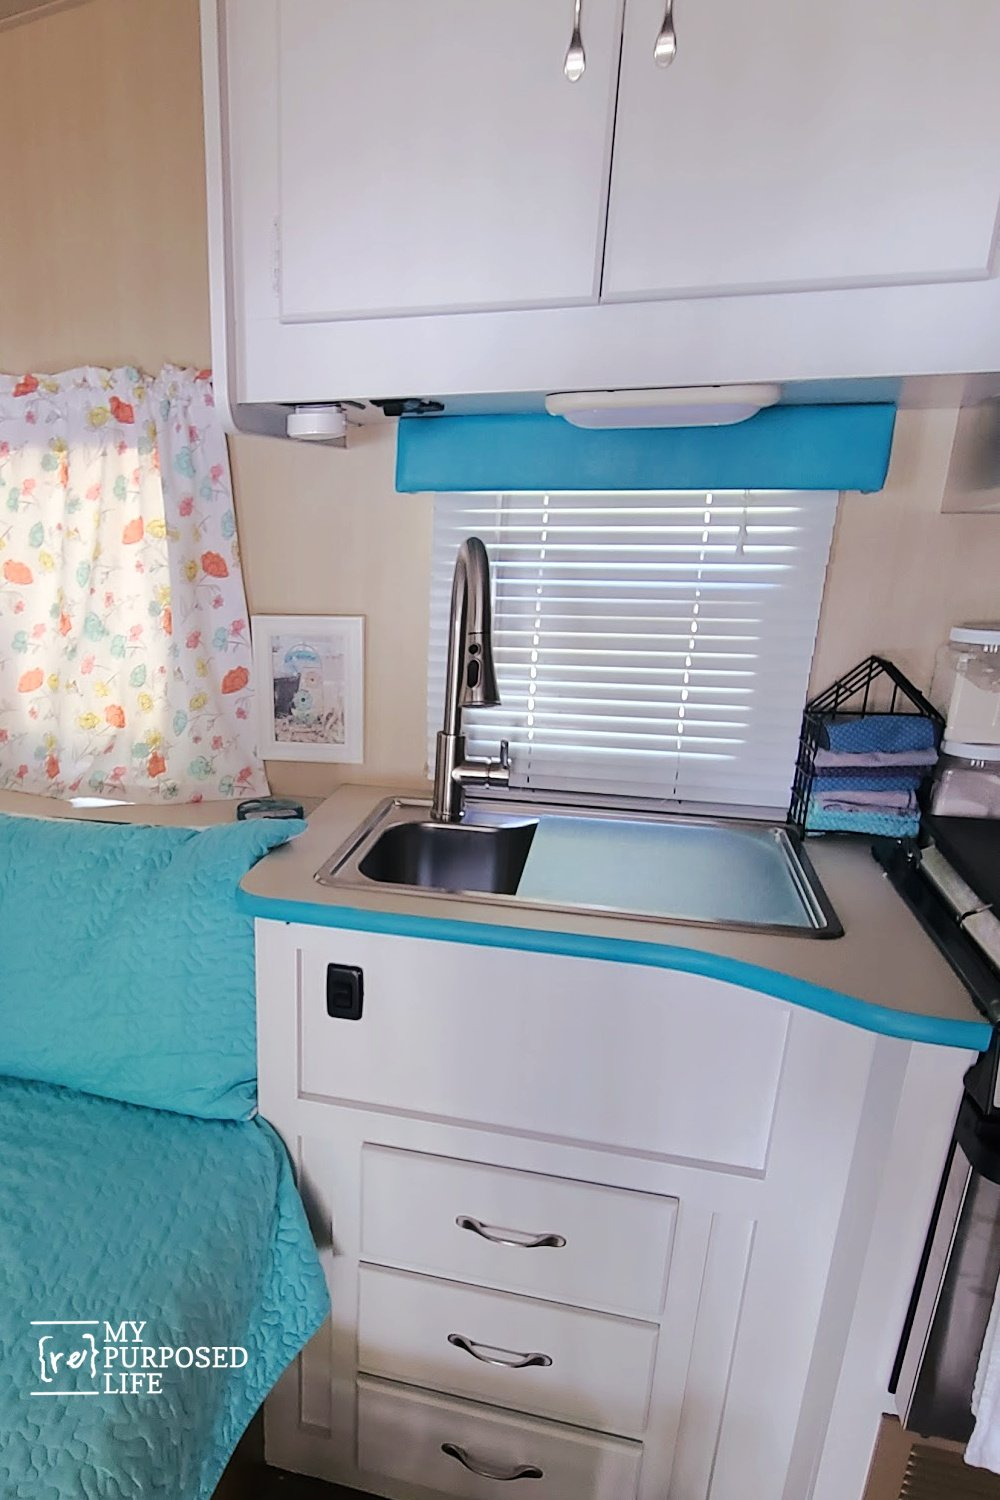 How and why I painted the camper cabinets. Tips and directions to help you do it yourself the right way. #MyRepurposedLife #diy #camper #rv #cabinets #paint via @repurposedlife